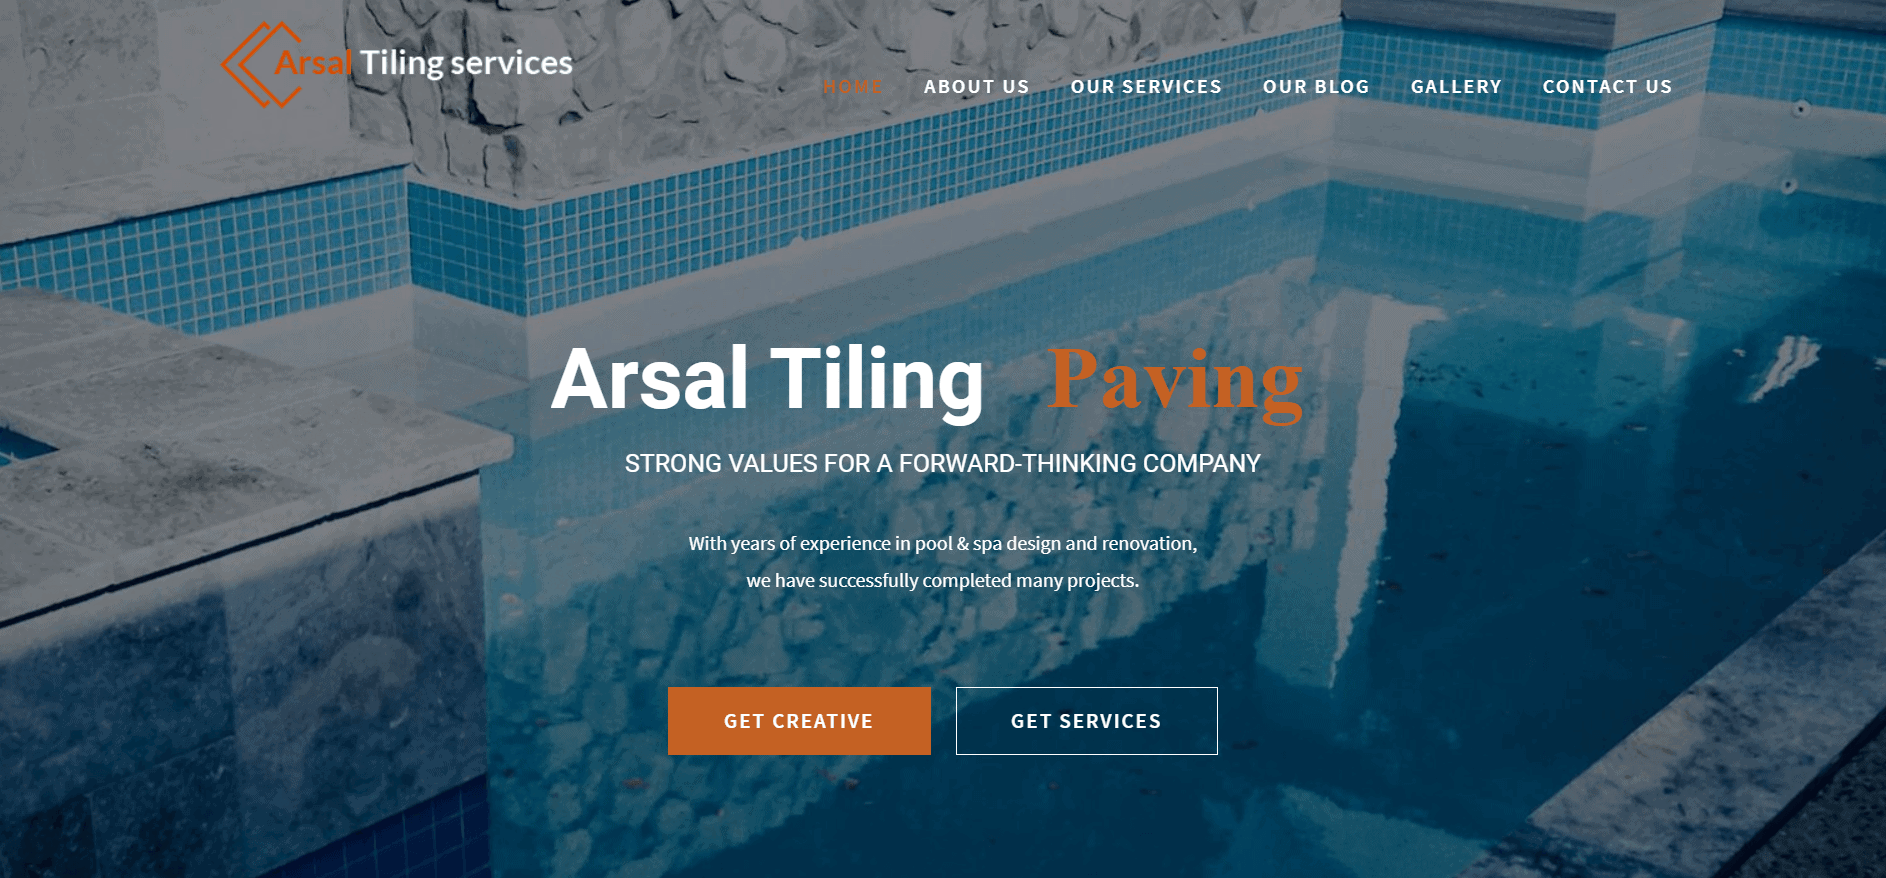 arsal tiling services